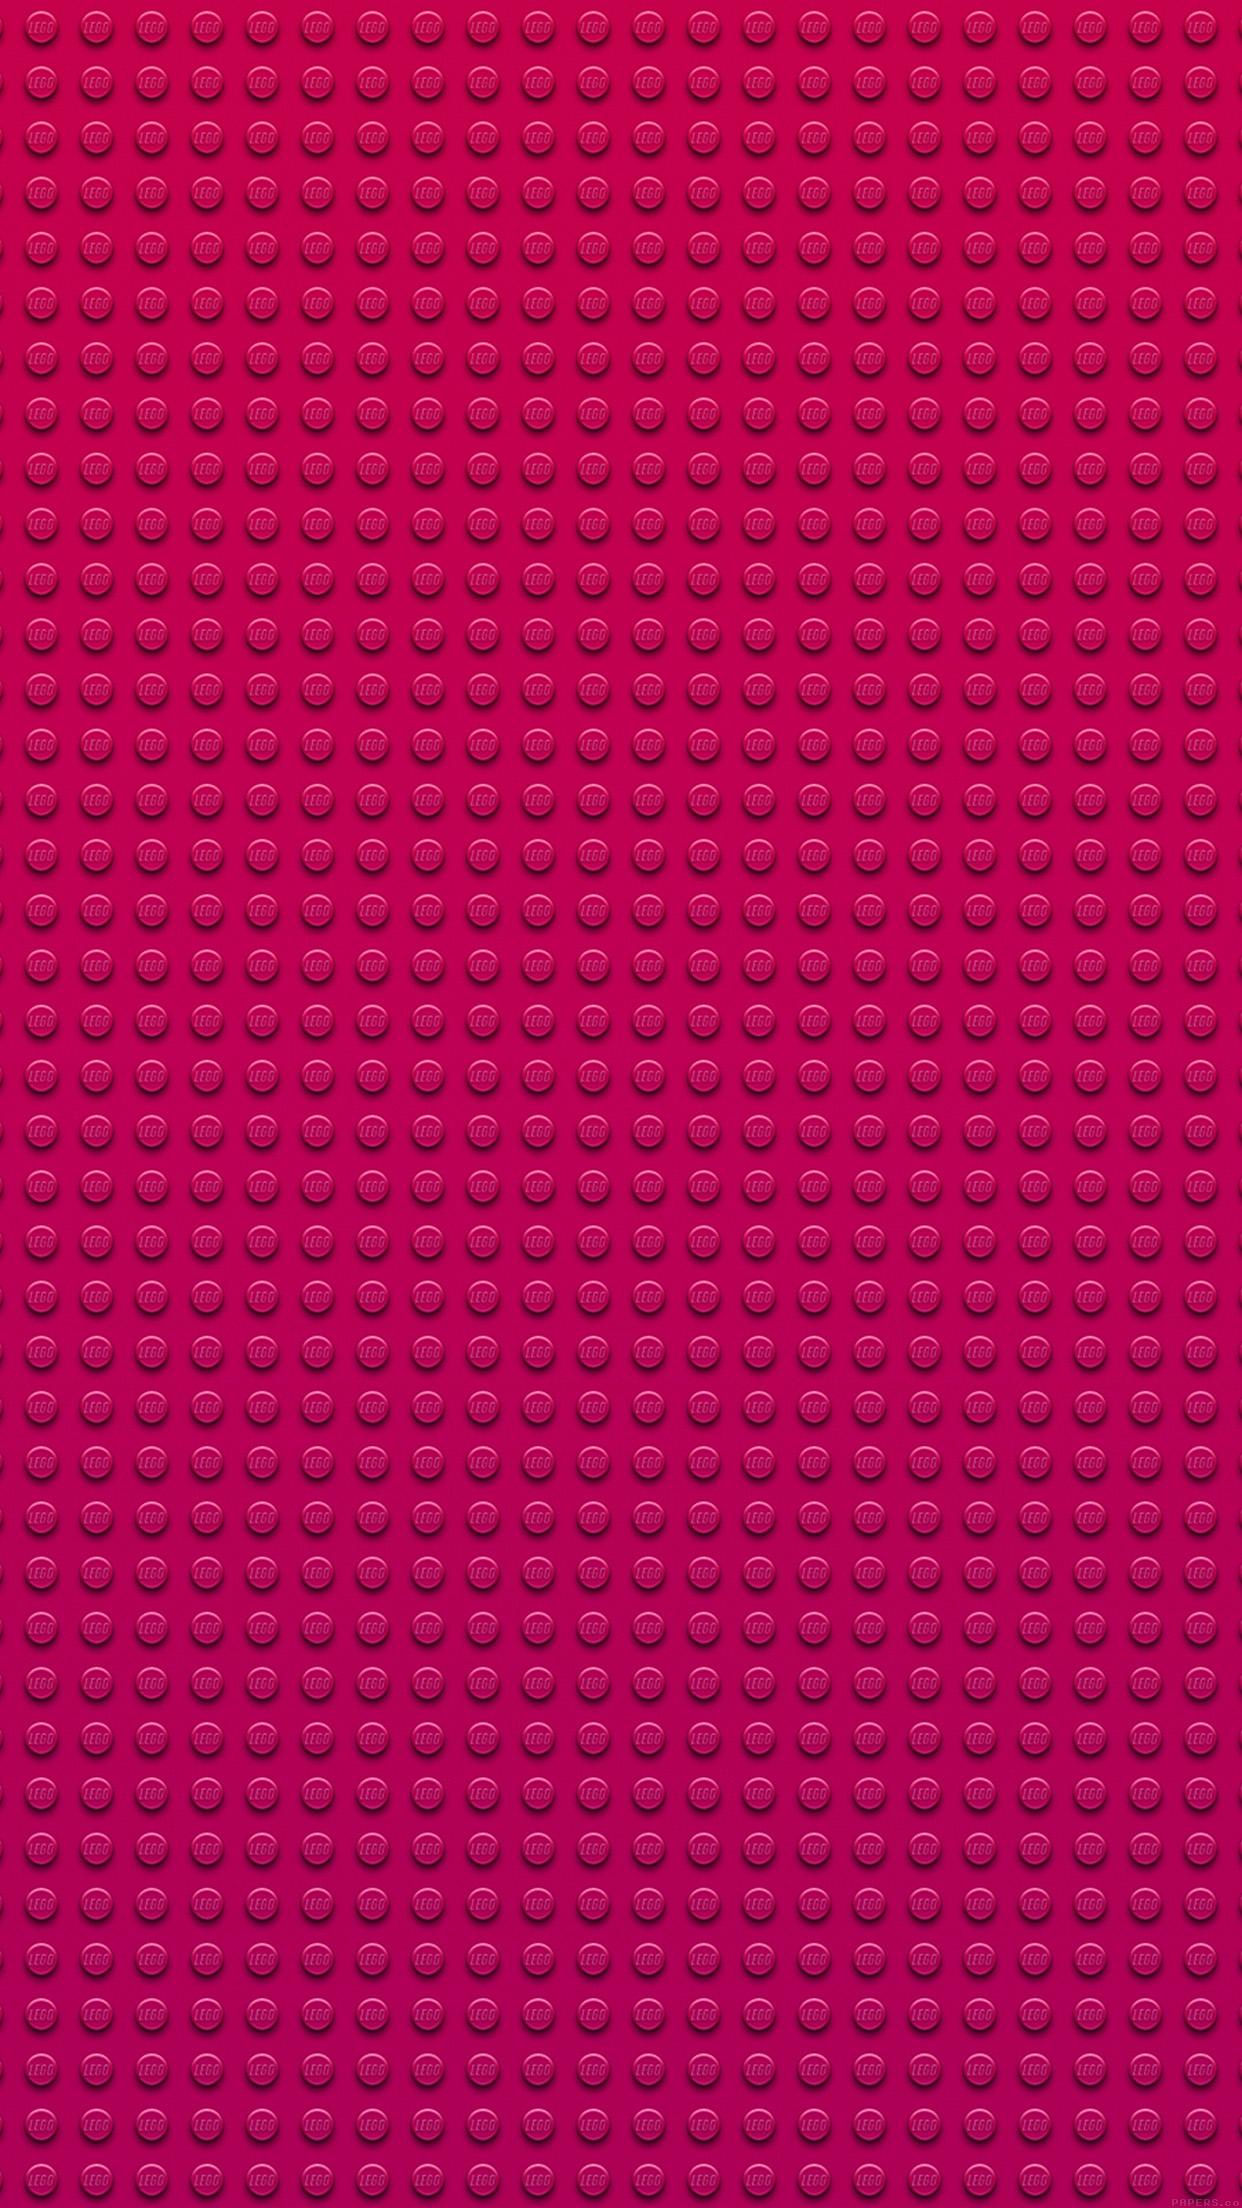 Iphonexpapers Vf32 Lego Toy Red Block Pattern